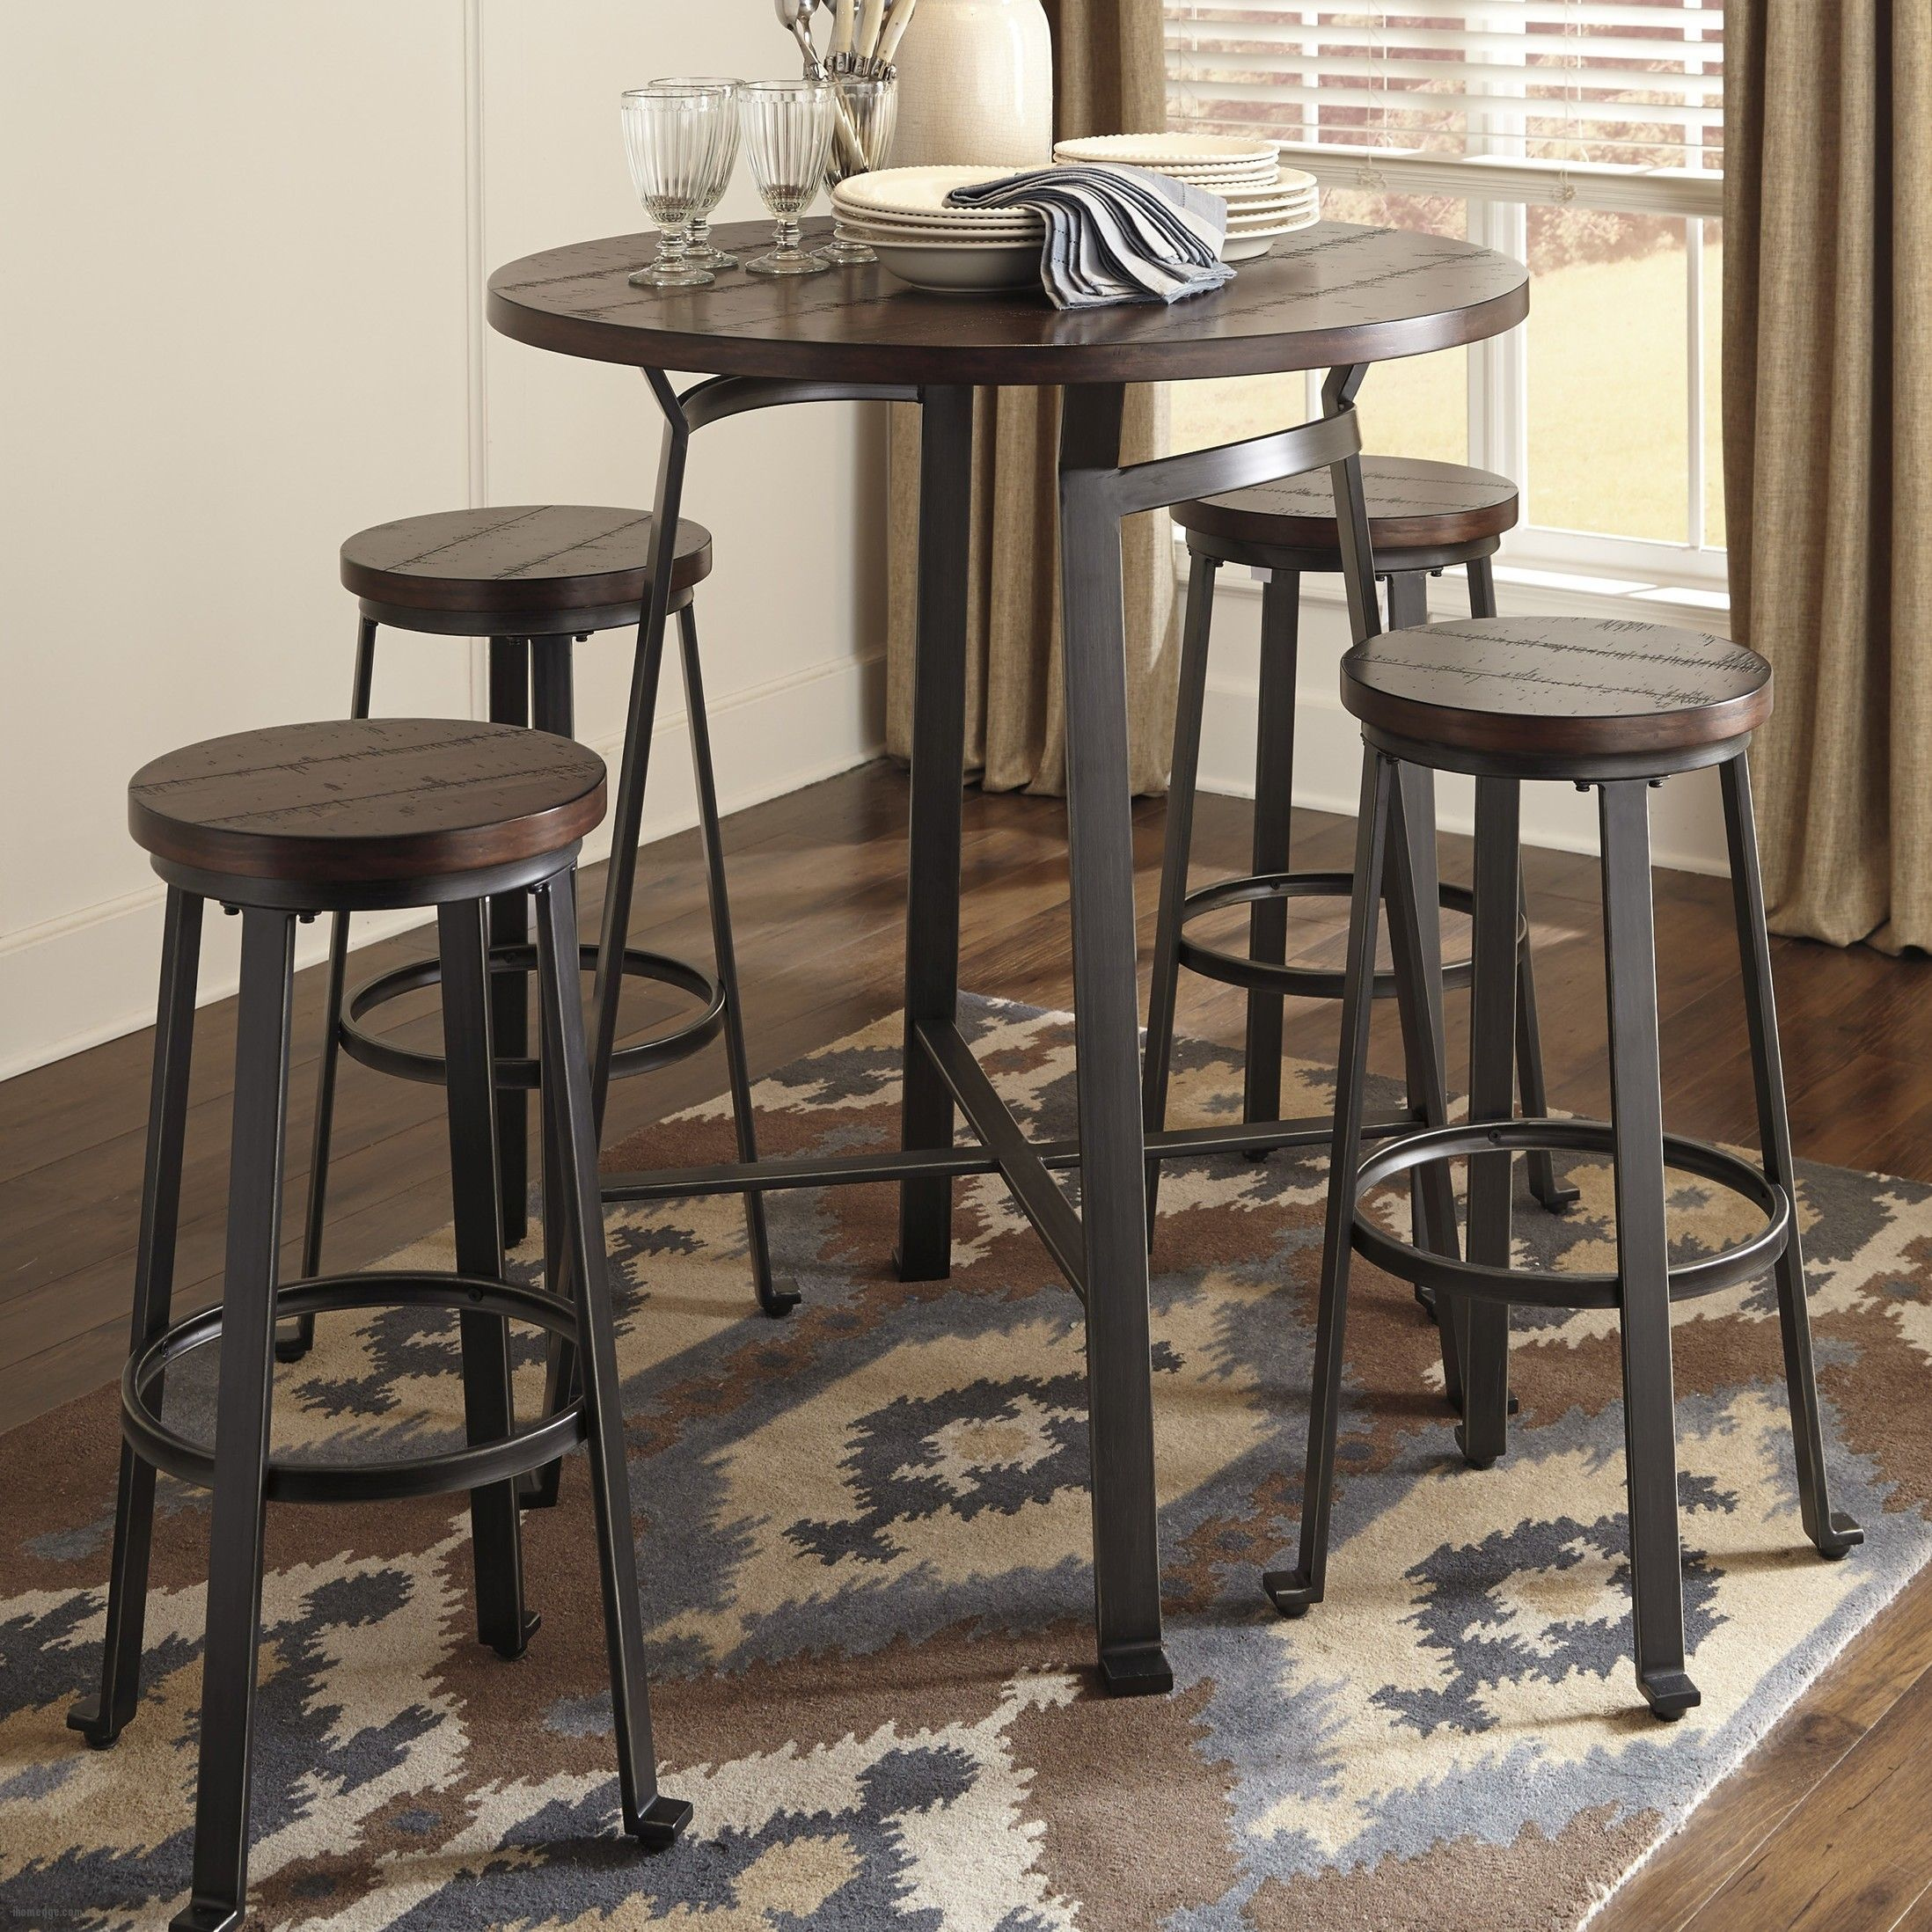 ideas rectangular best small table pub with chairs bunch kitchen for of flooring round carpet dining bar style